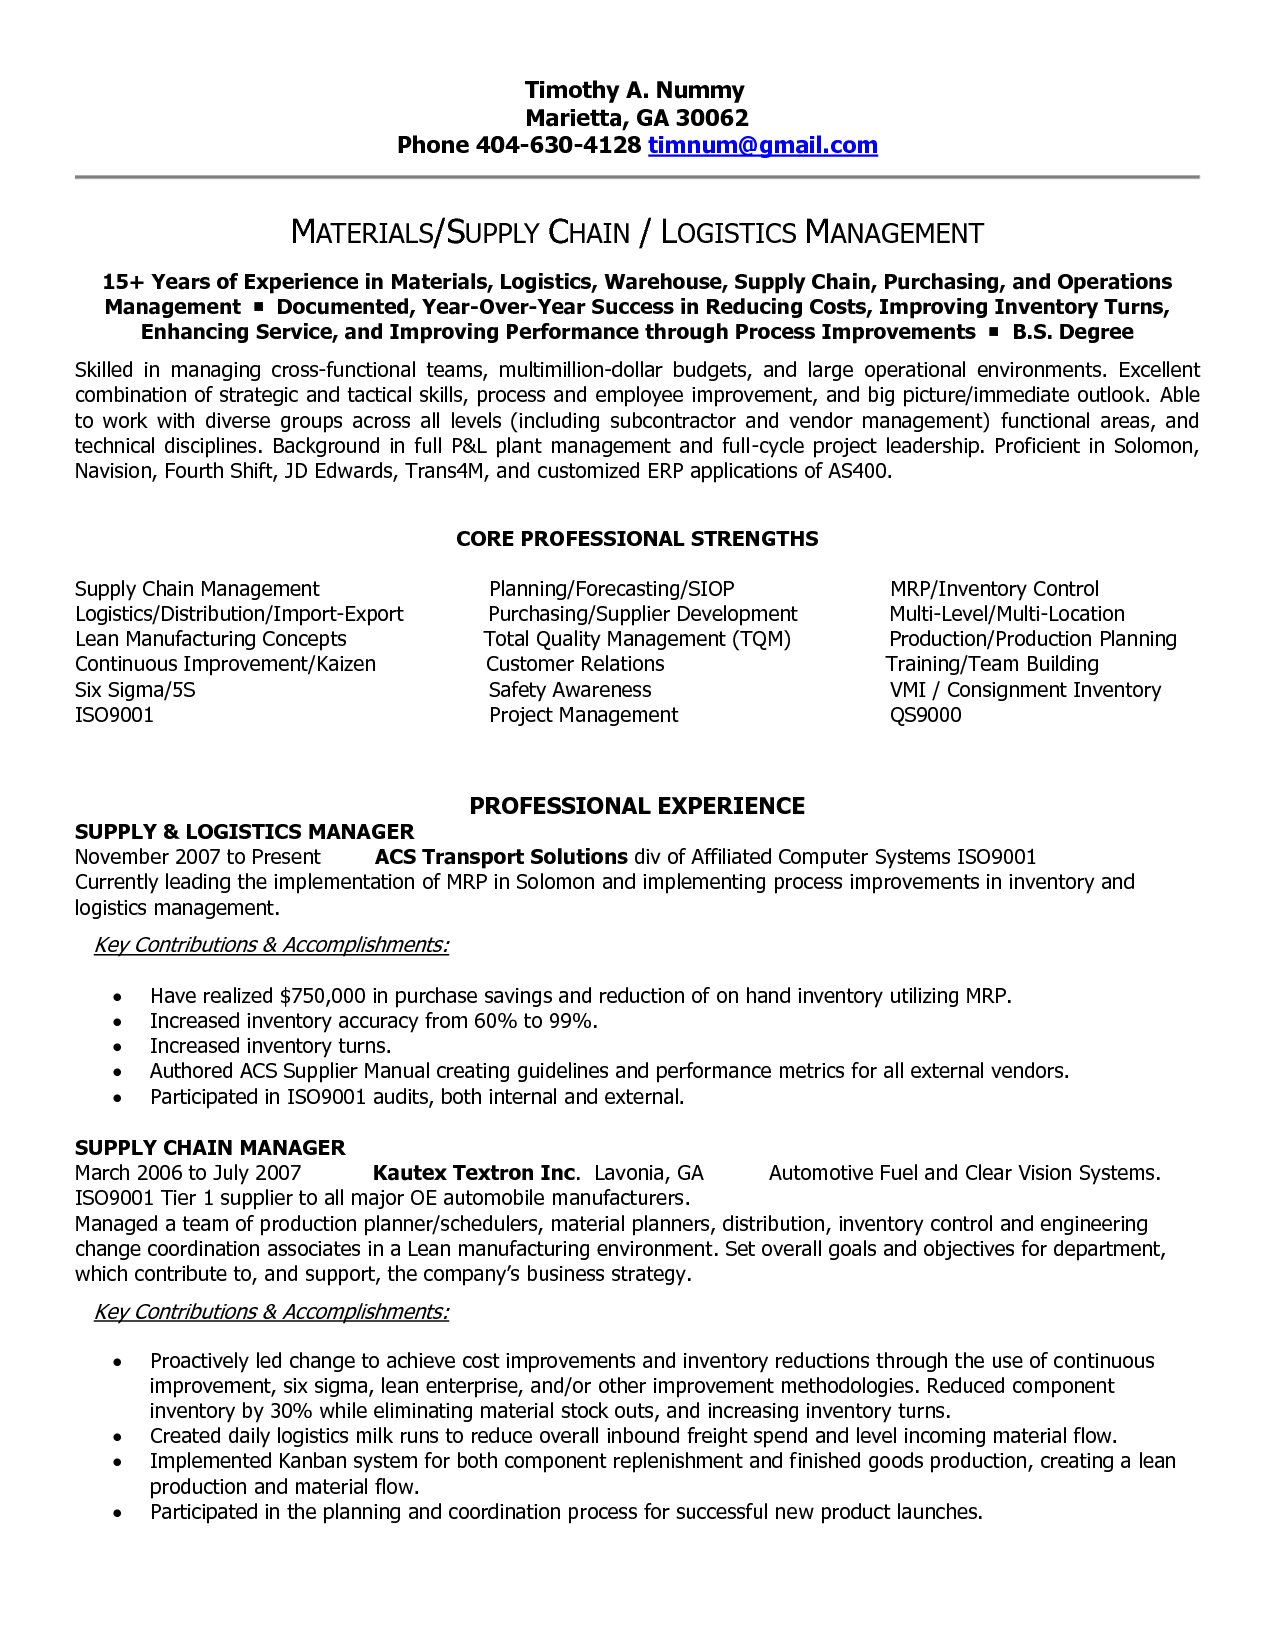 Supply Chain Resume Templates | Supply Chain Manager in Atlanta GA ...